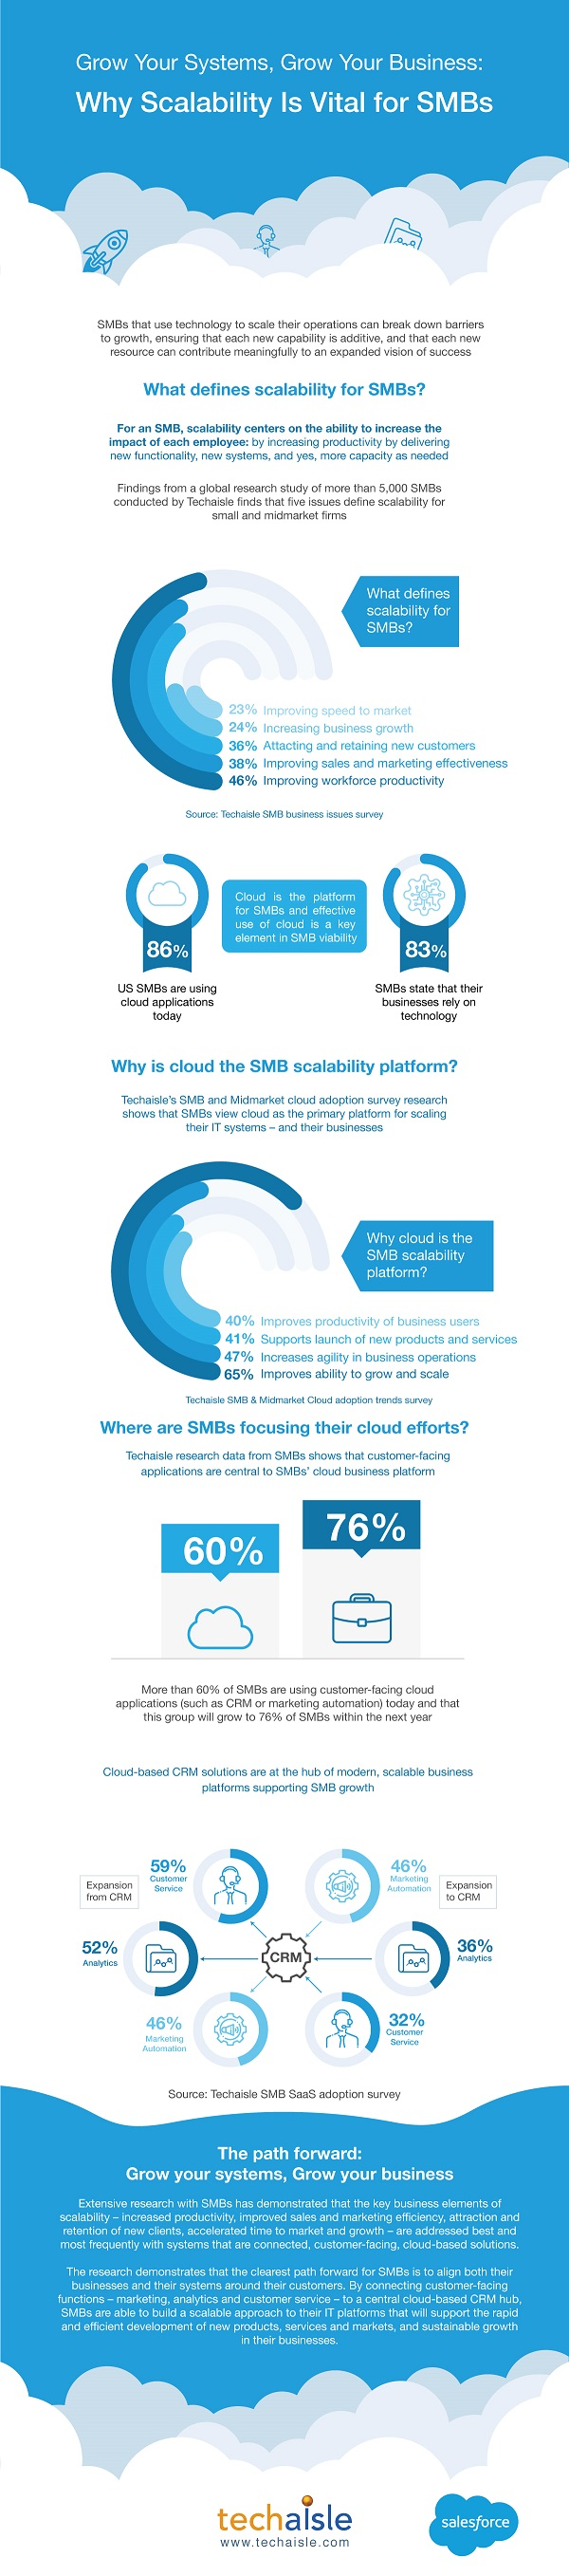 techaisle infographic smb scalability salesforce low res